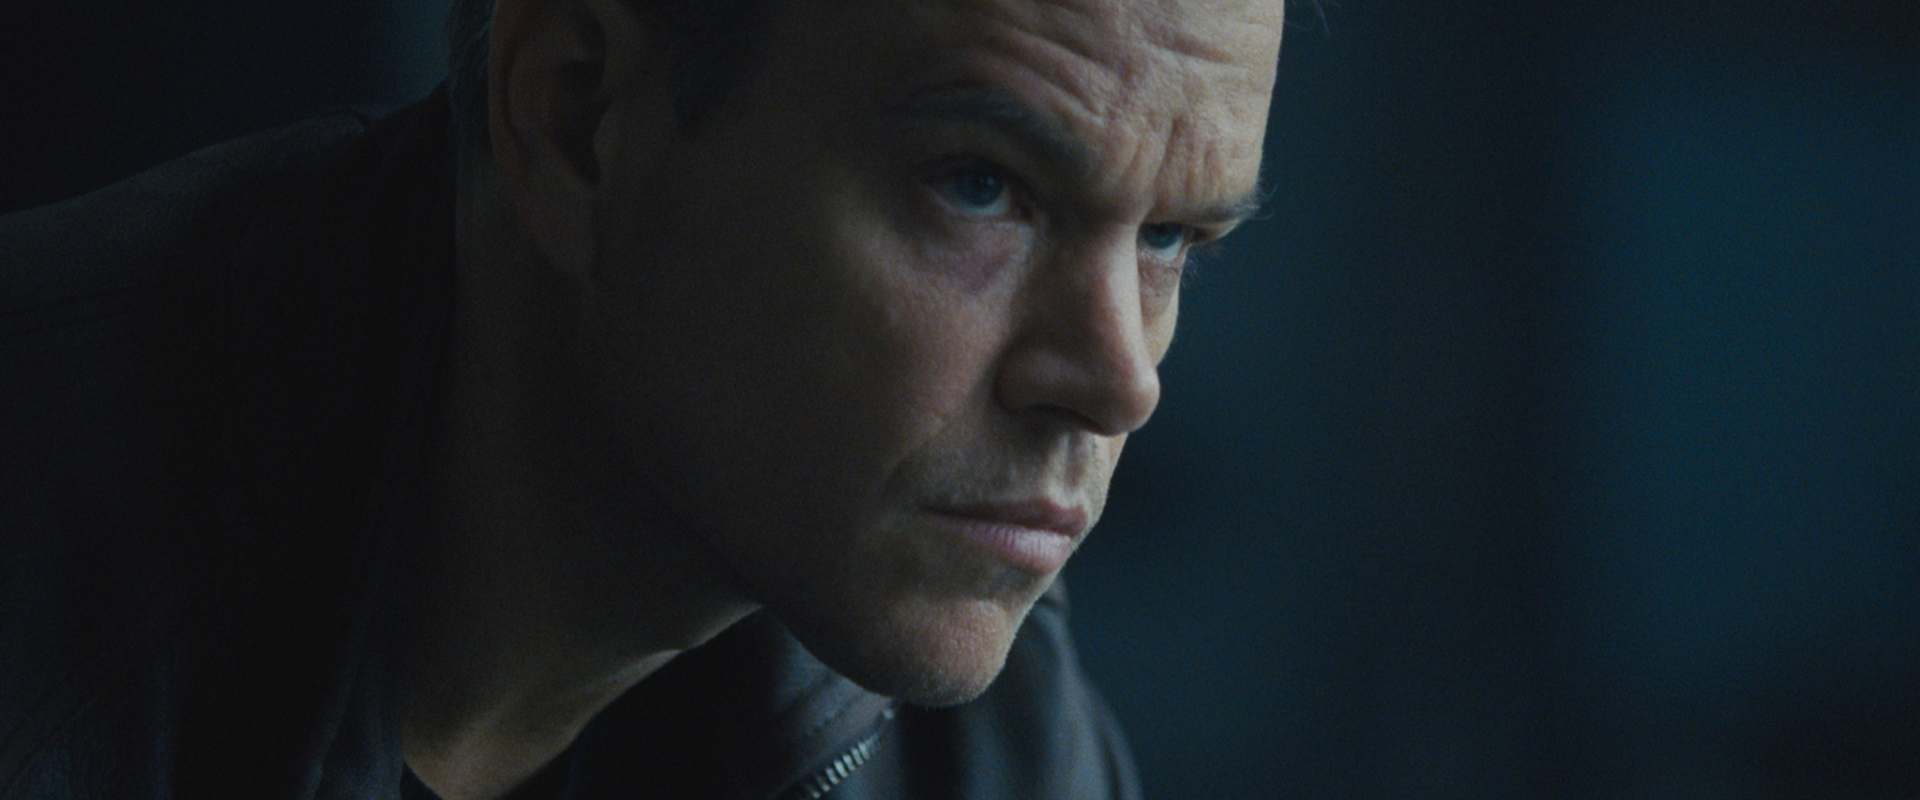 Jason Bourne background 2